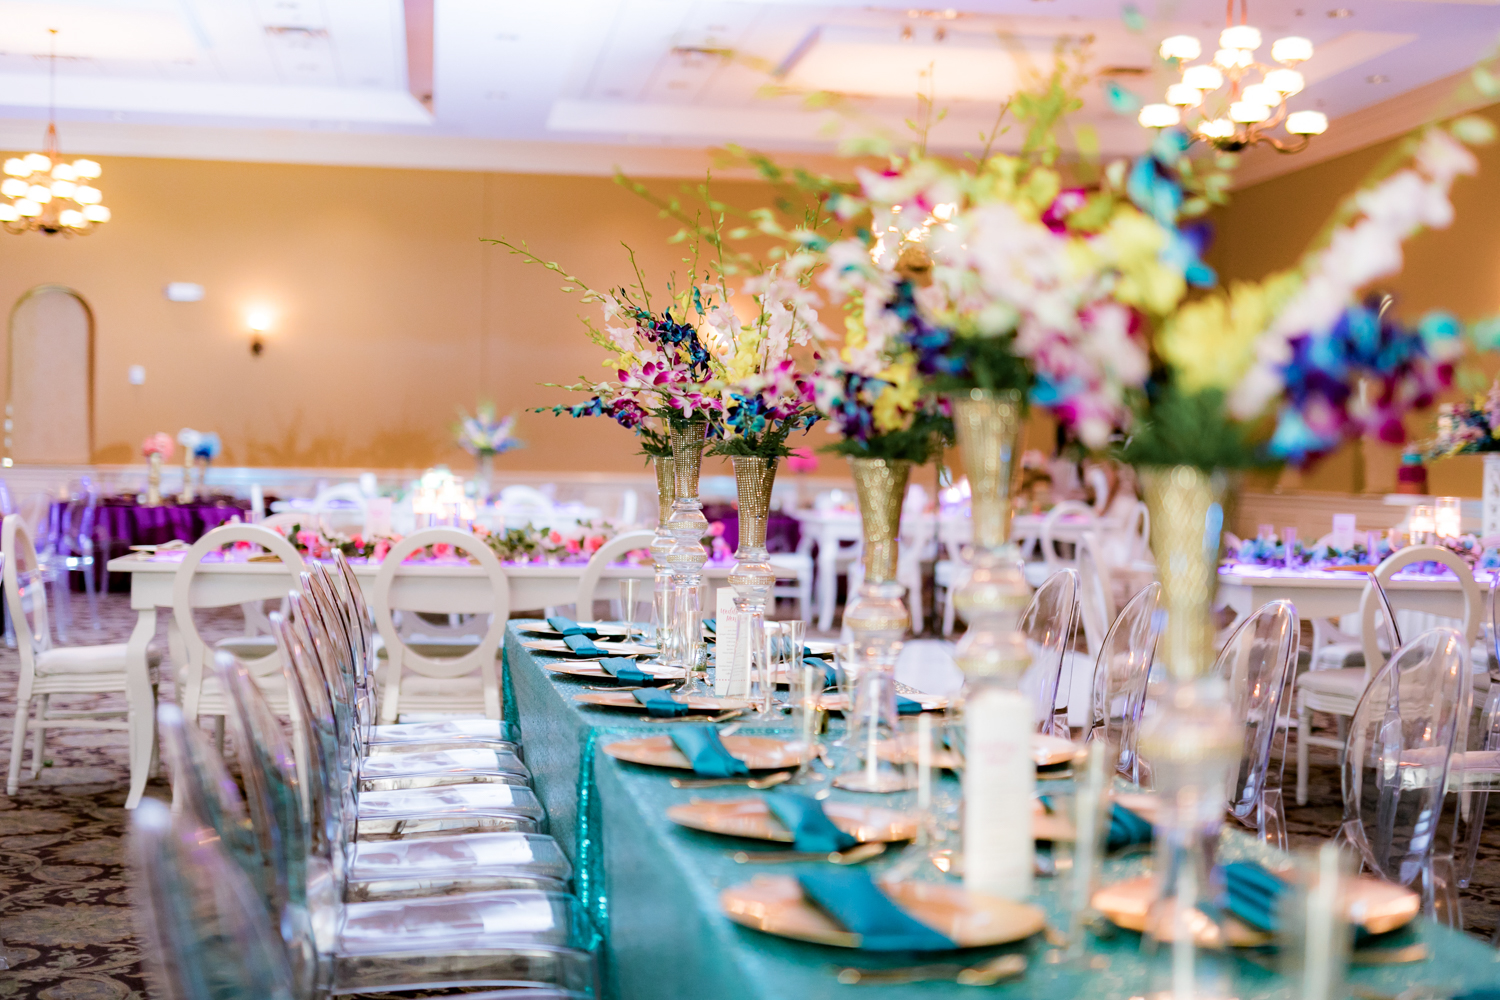 Vibrant blue table linens topped with colorful flower arrangements.